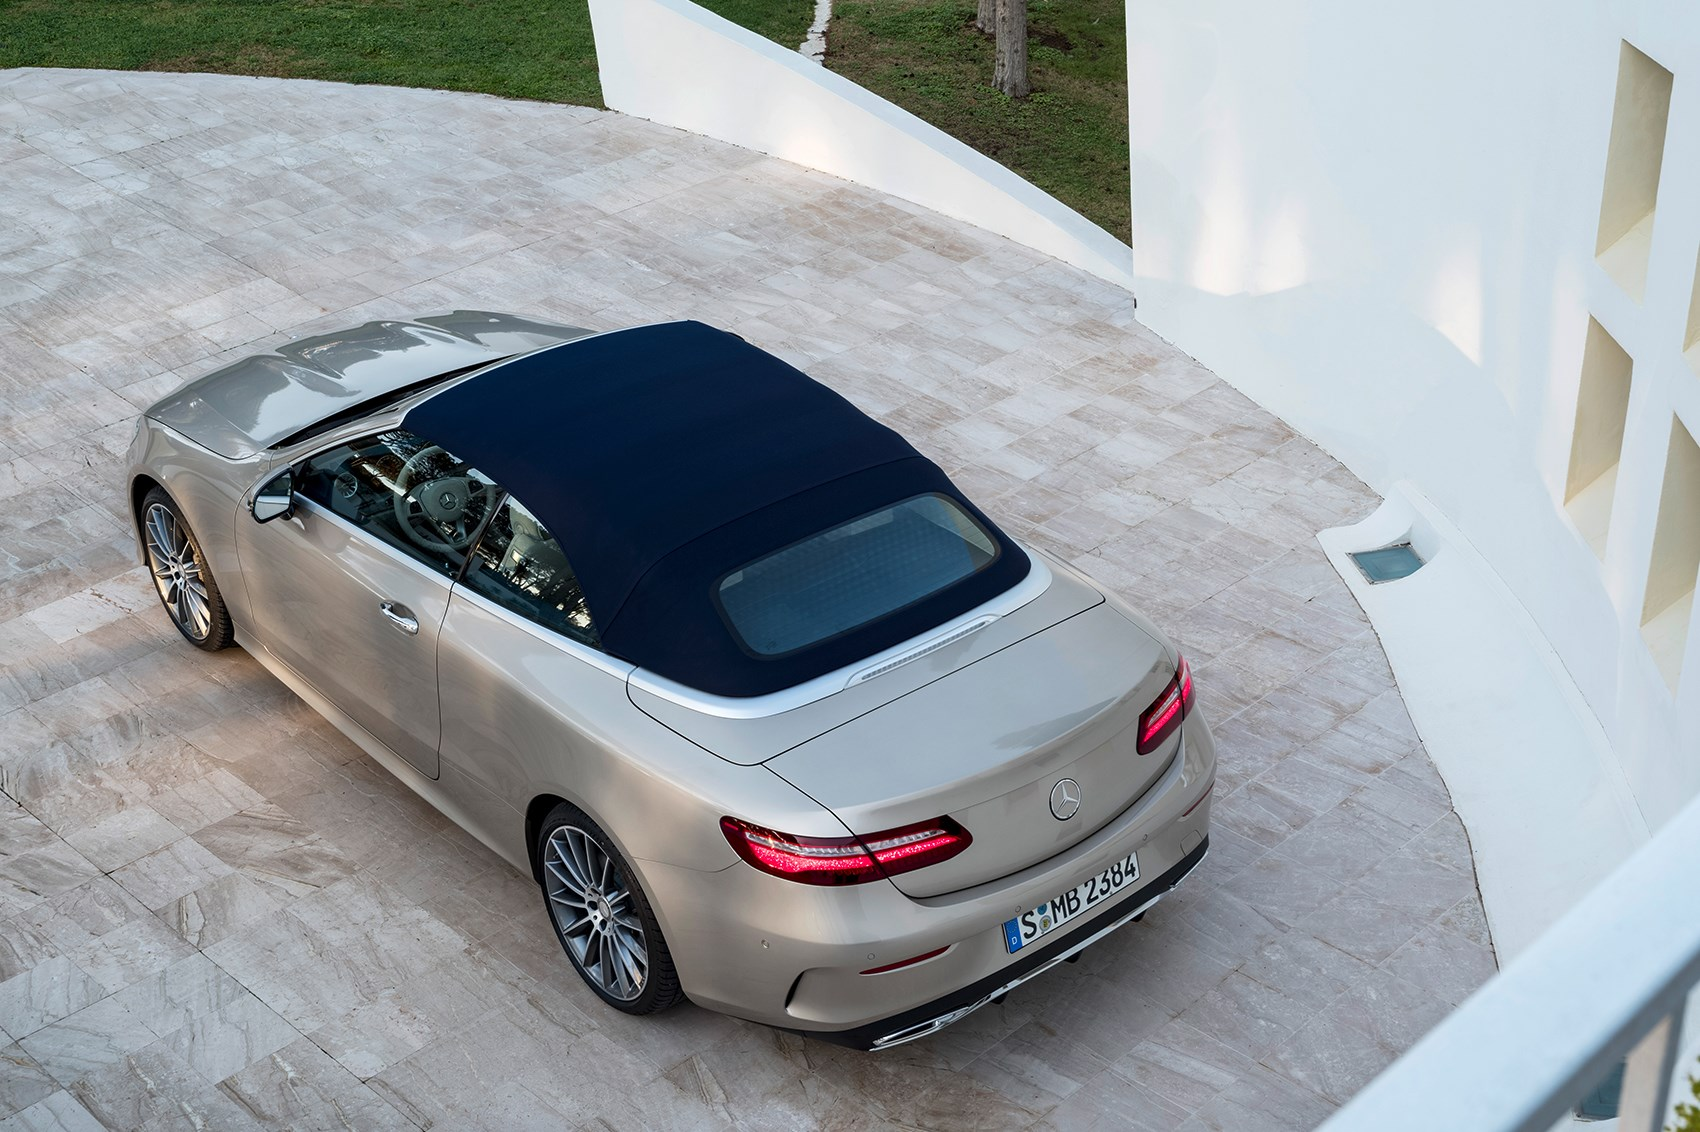 Merc blows the roof off the Mercedes E-class Cabriolet at ...